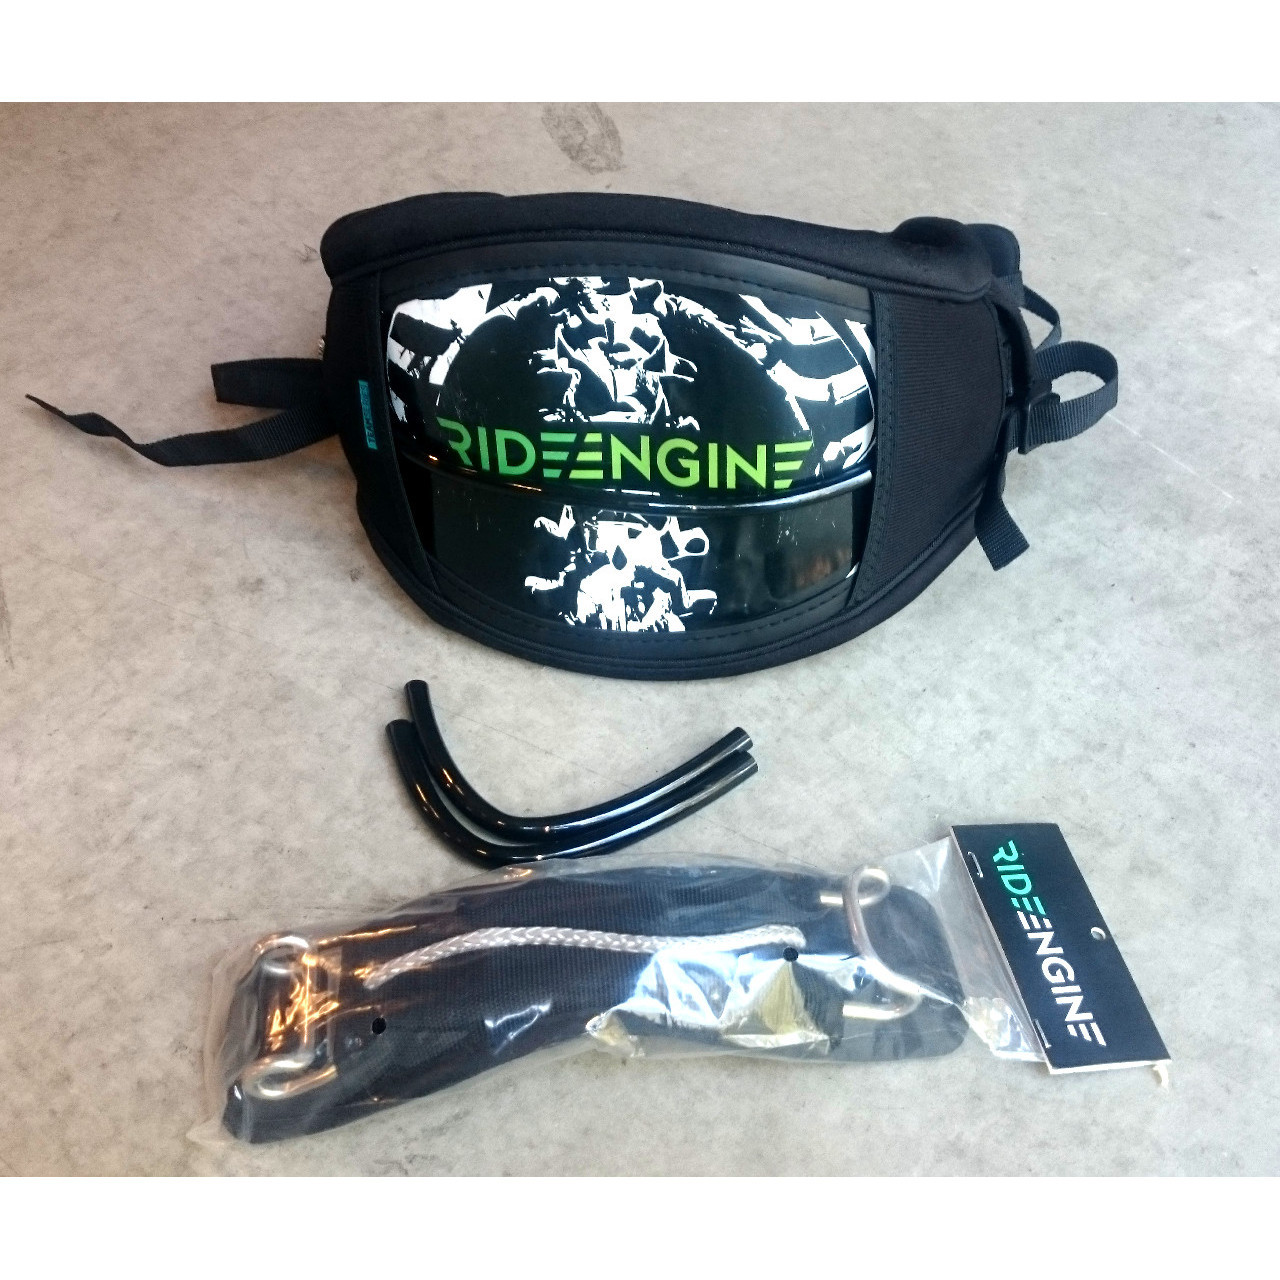 2016 Ride Engine Spinal Tap Pro Harness - Small Demo